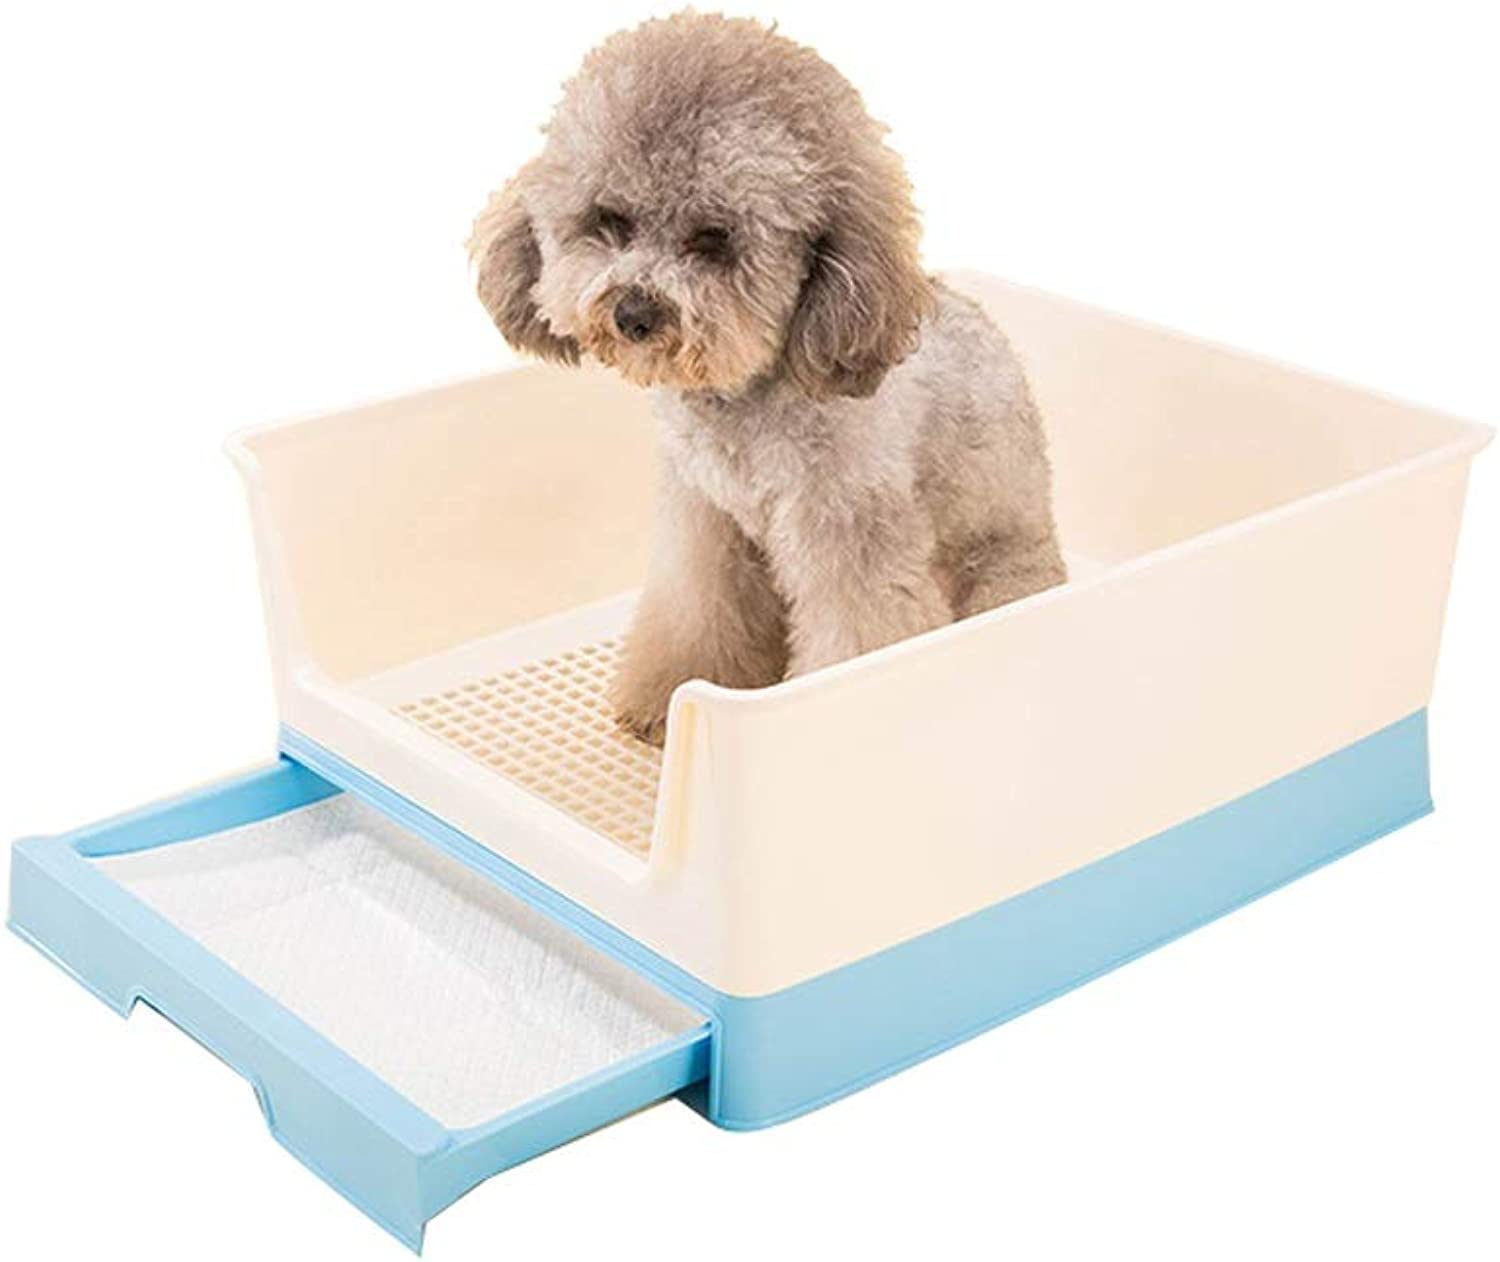 Cat Litter Boxes Pet Toilet Medium Dog Large Dog Large Urinal Pet Artifact Male Dog Toilet Potty with Drawer Easy to Clean Stool Urinal (color   bluee)